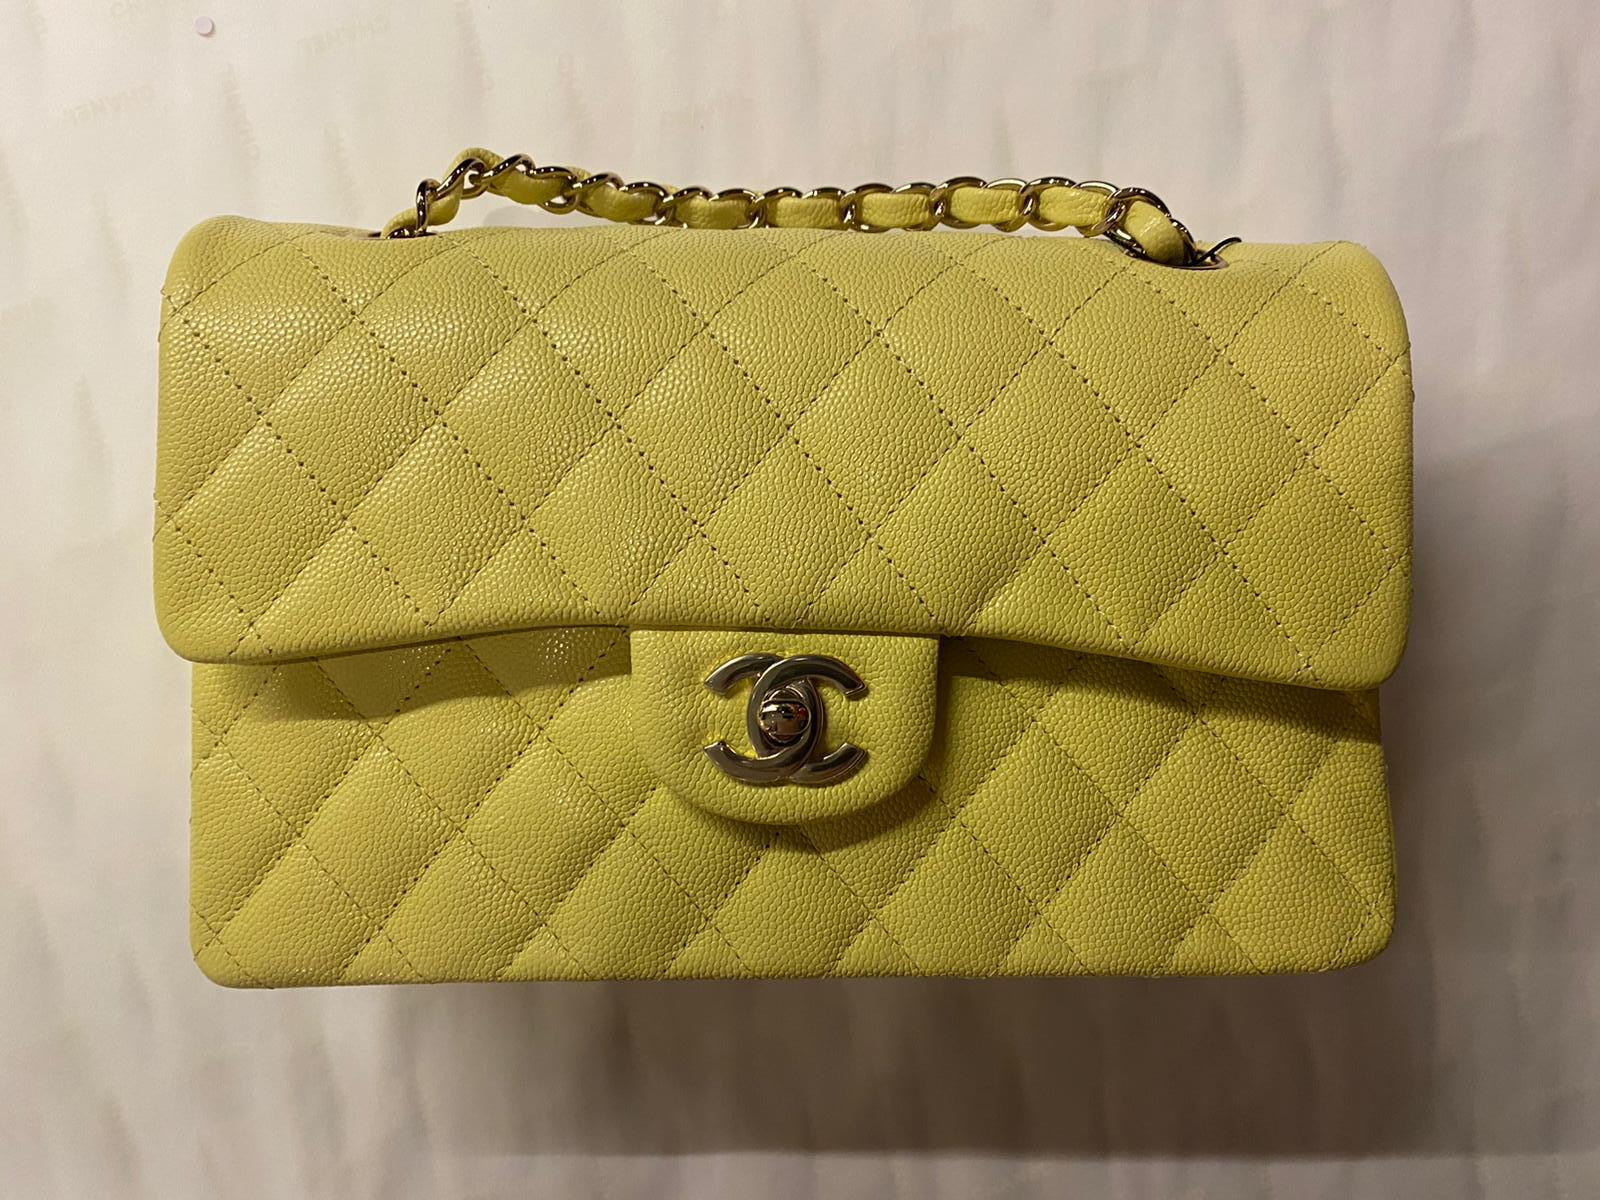 Chanel -  Xupes Yellow Quilted Lambskin Bag